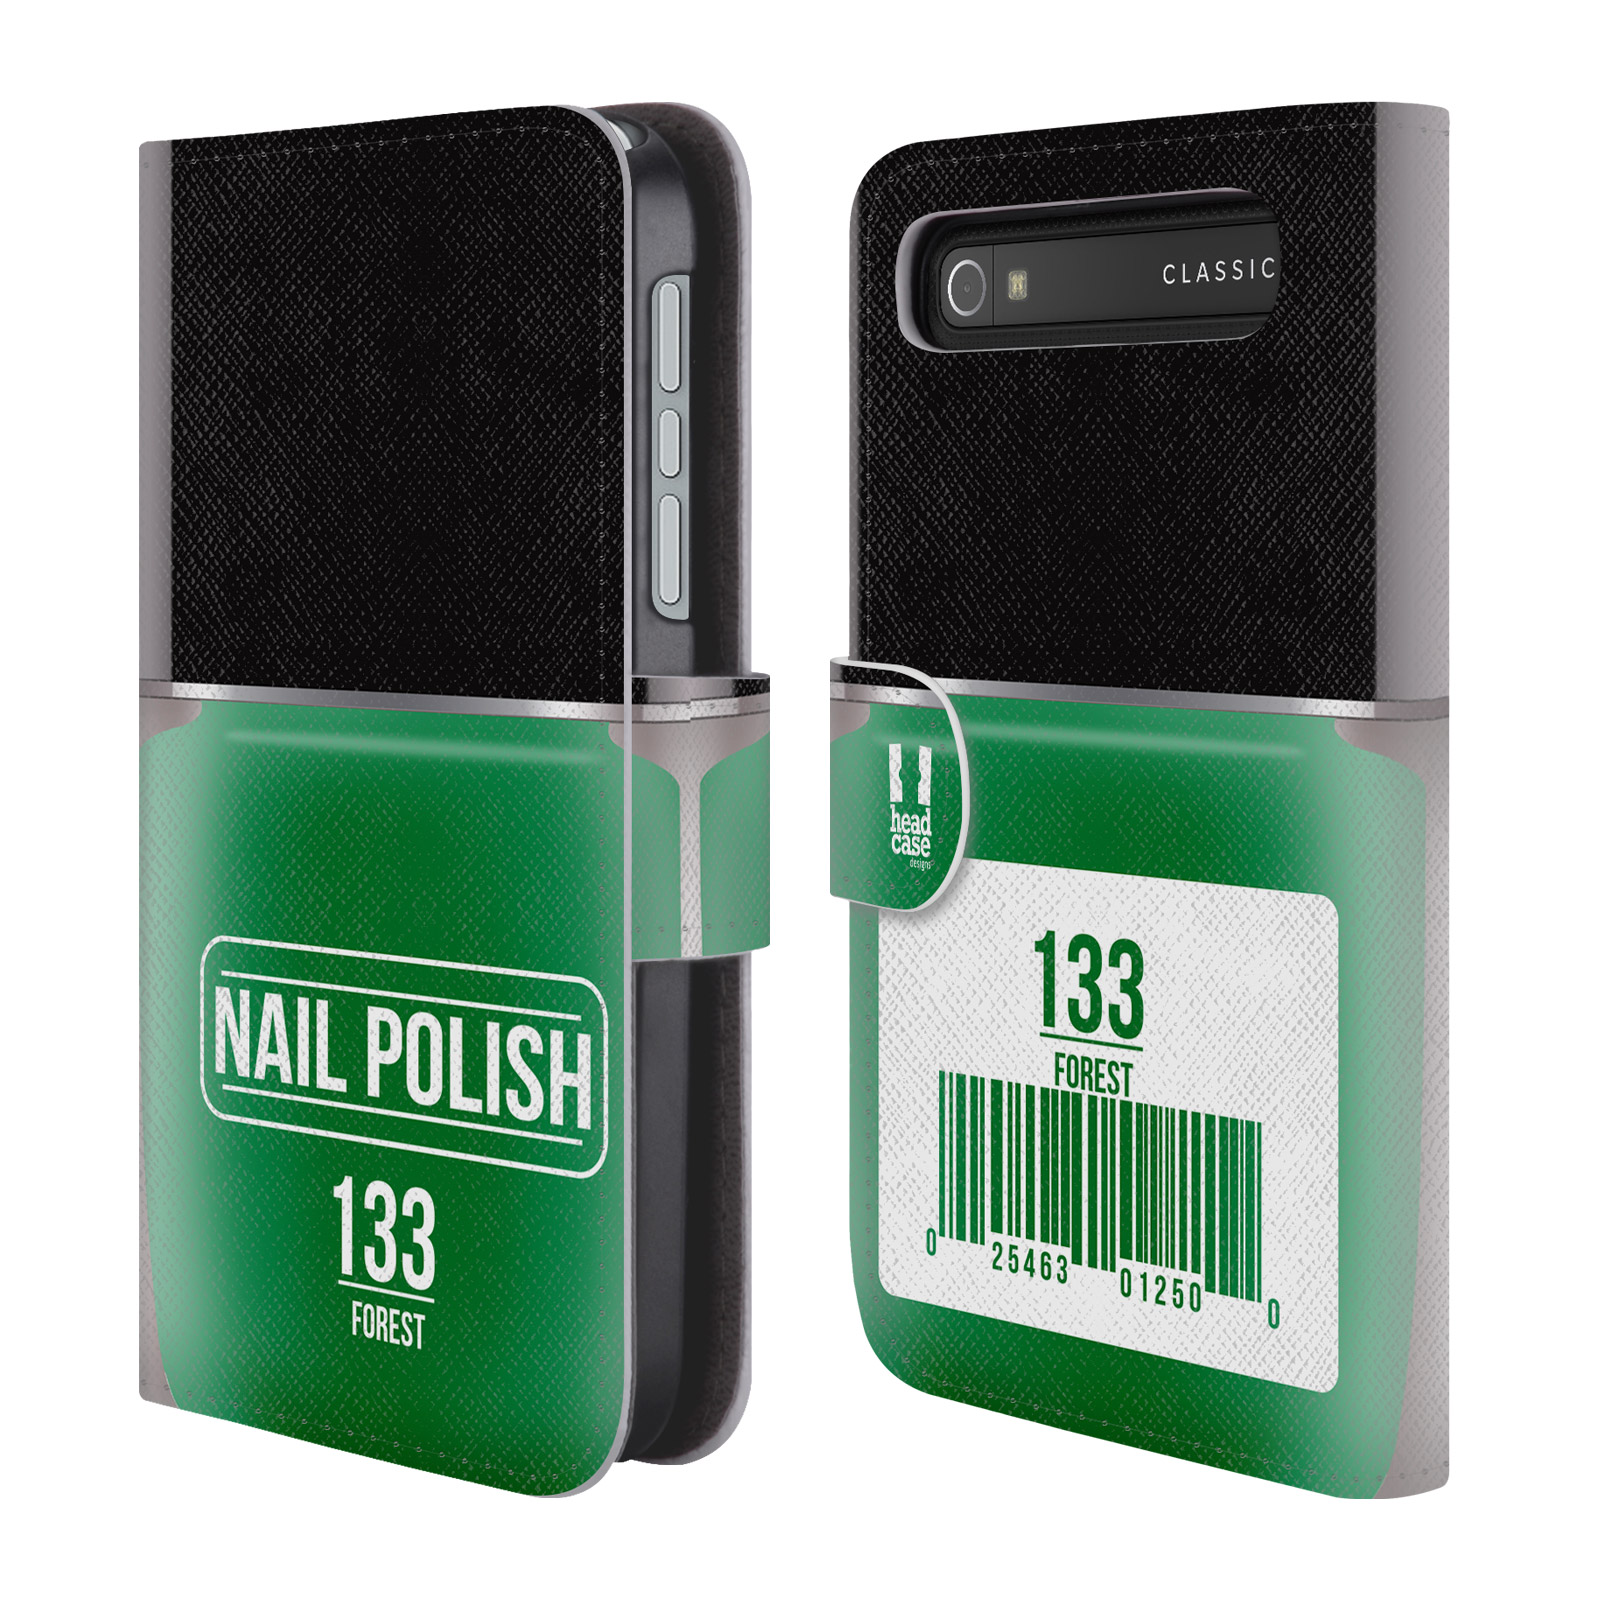 Book Cover Black Berry : Head case designs nail polish leather book for